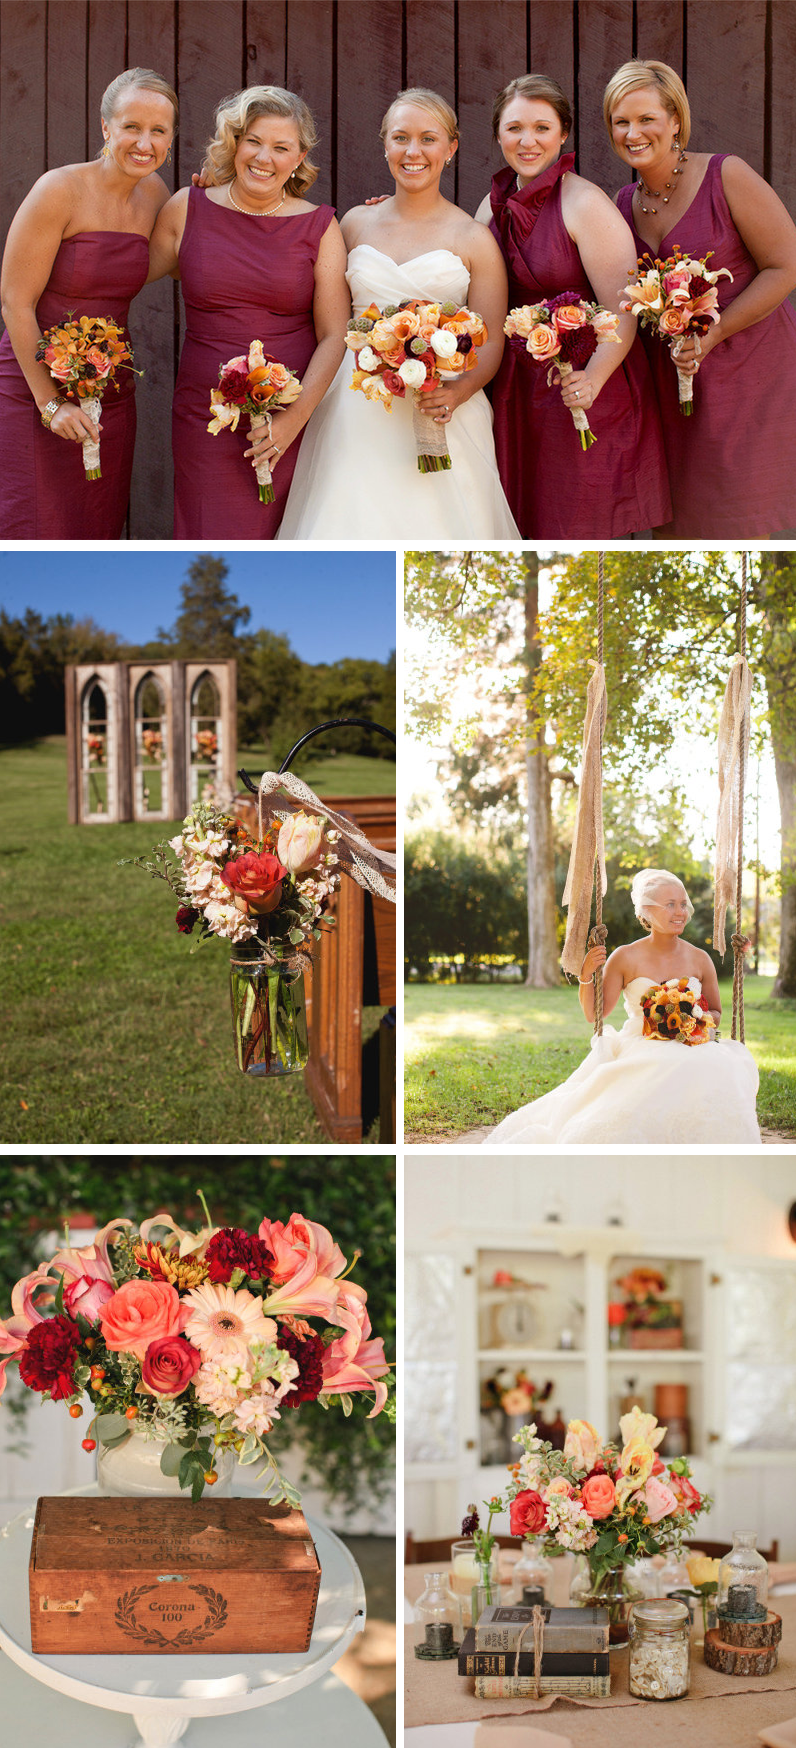 Outdoor country western themed wedding colorful